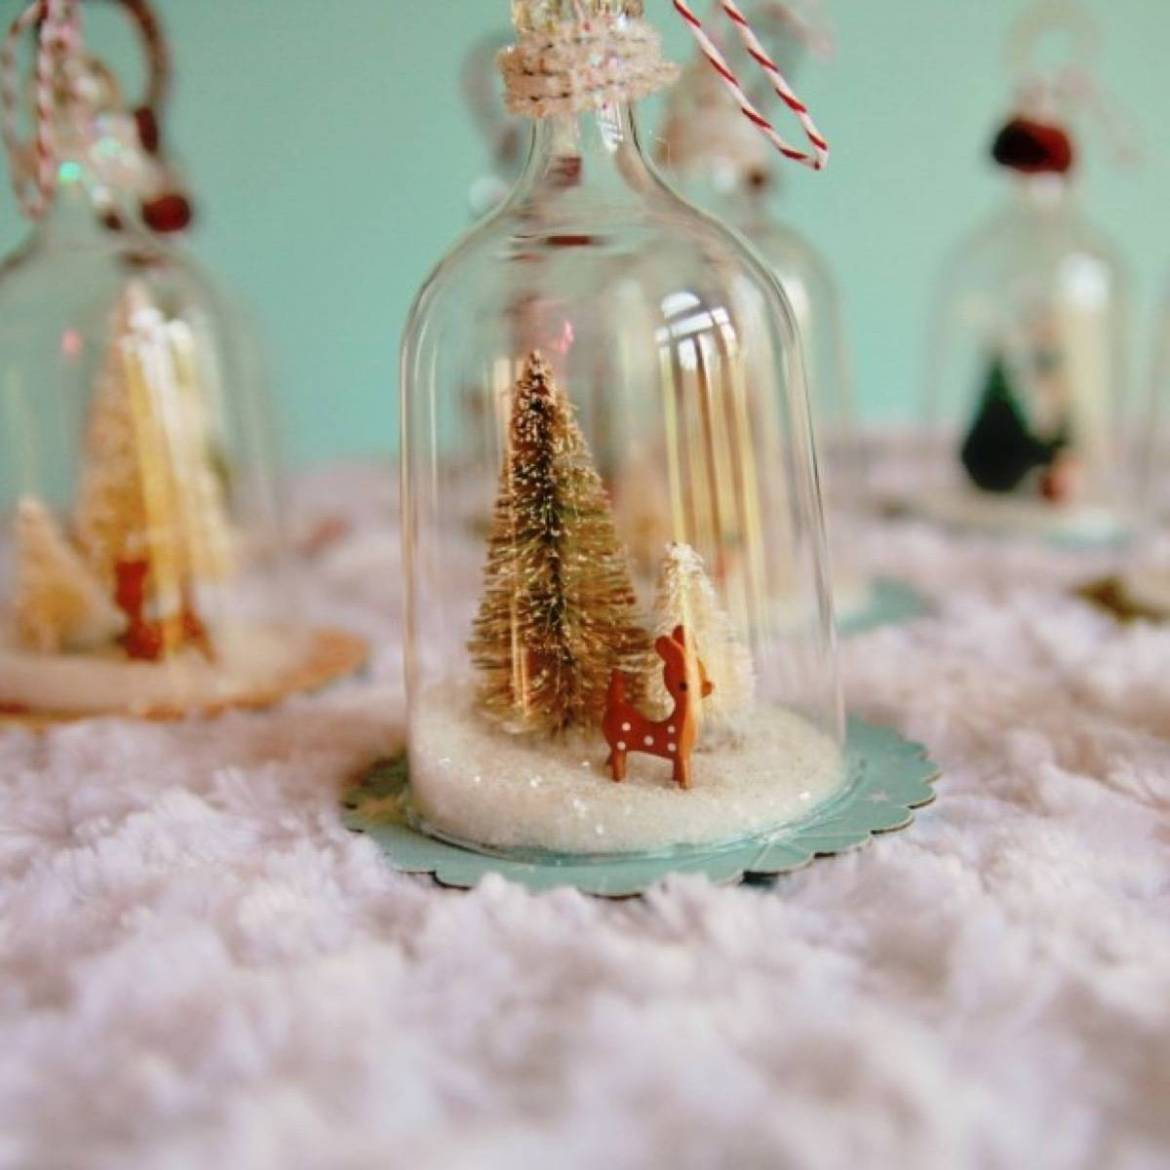 Adorable bell glass ornament